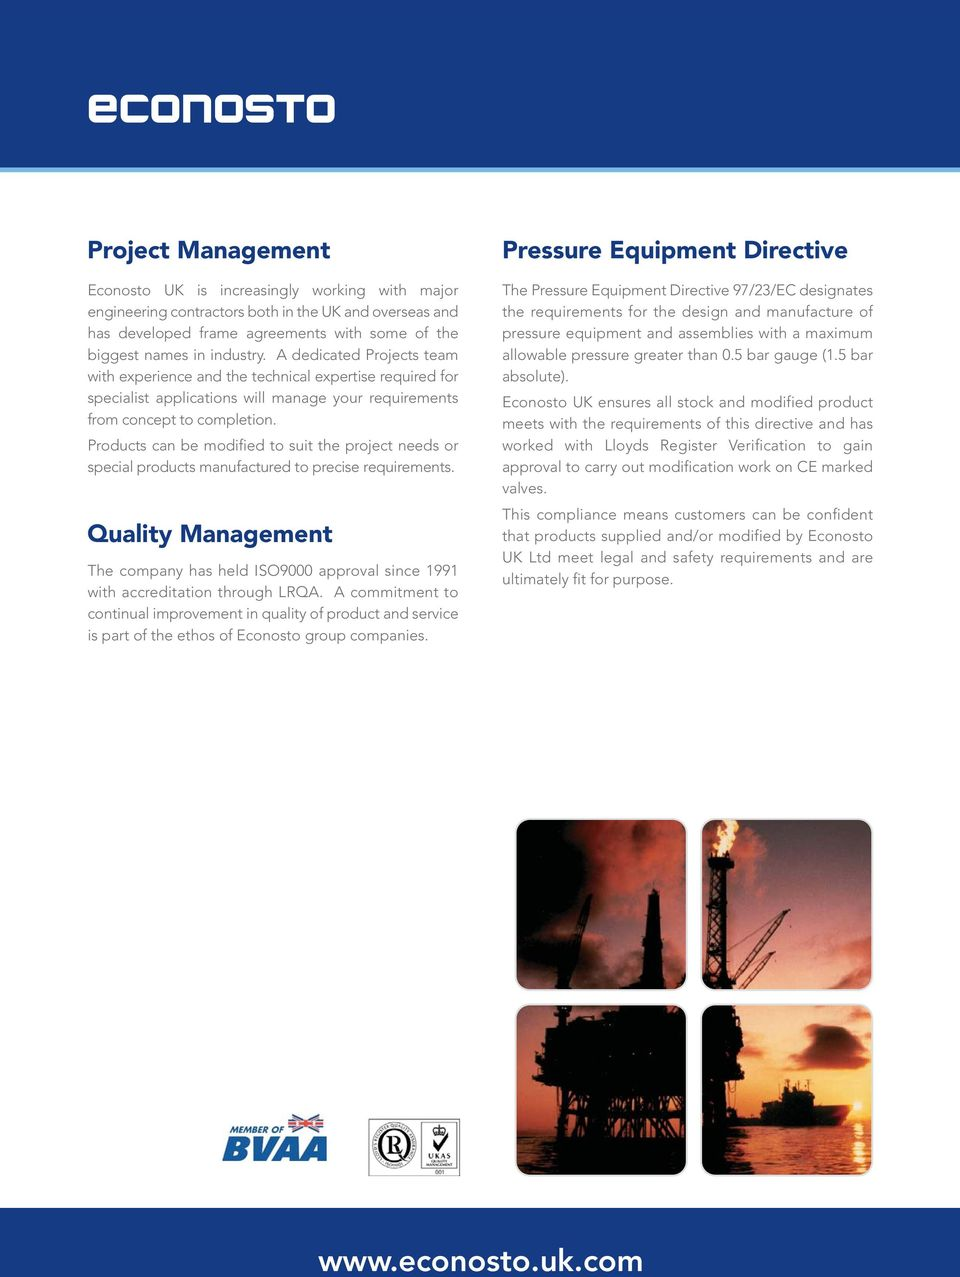 Products can be modified to suit the project needs or special products manufactured to precise requirements.